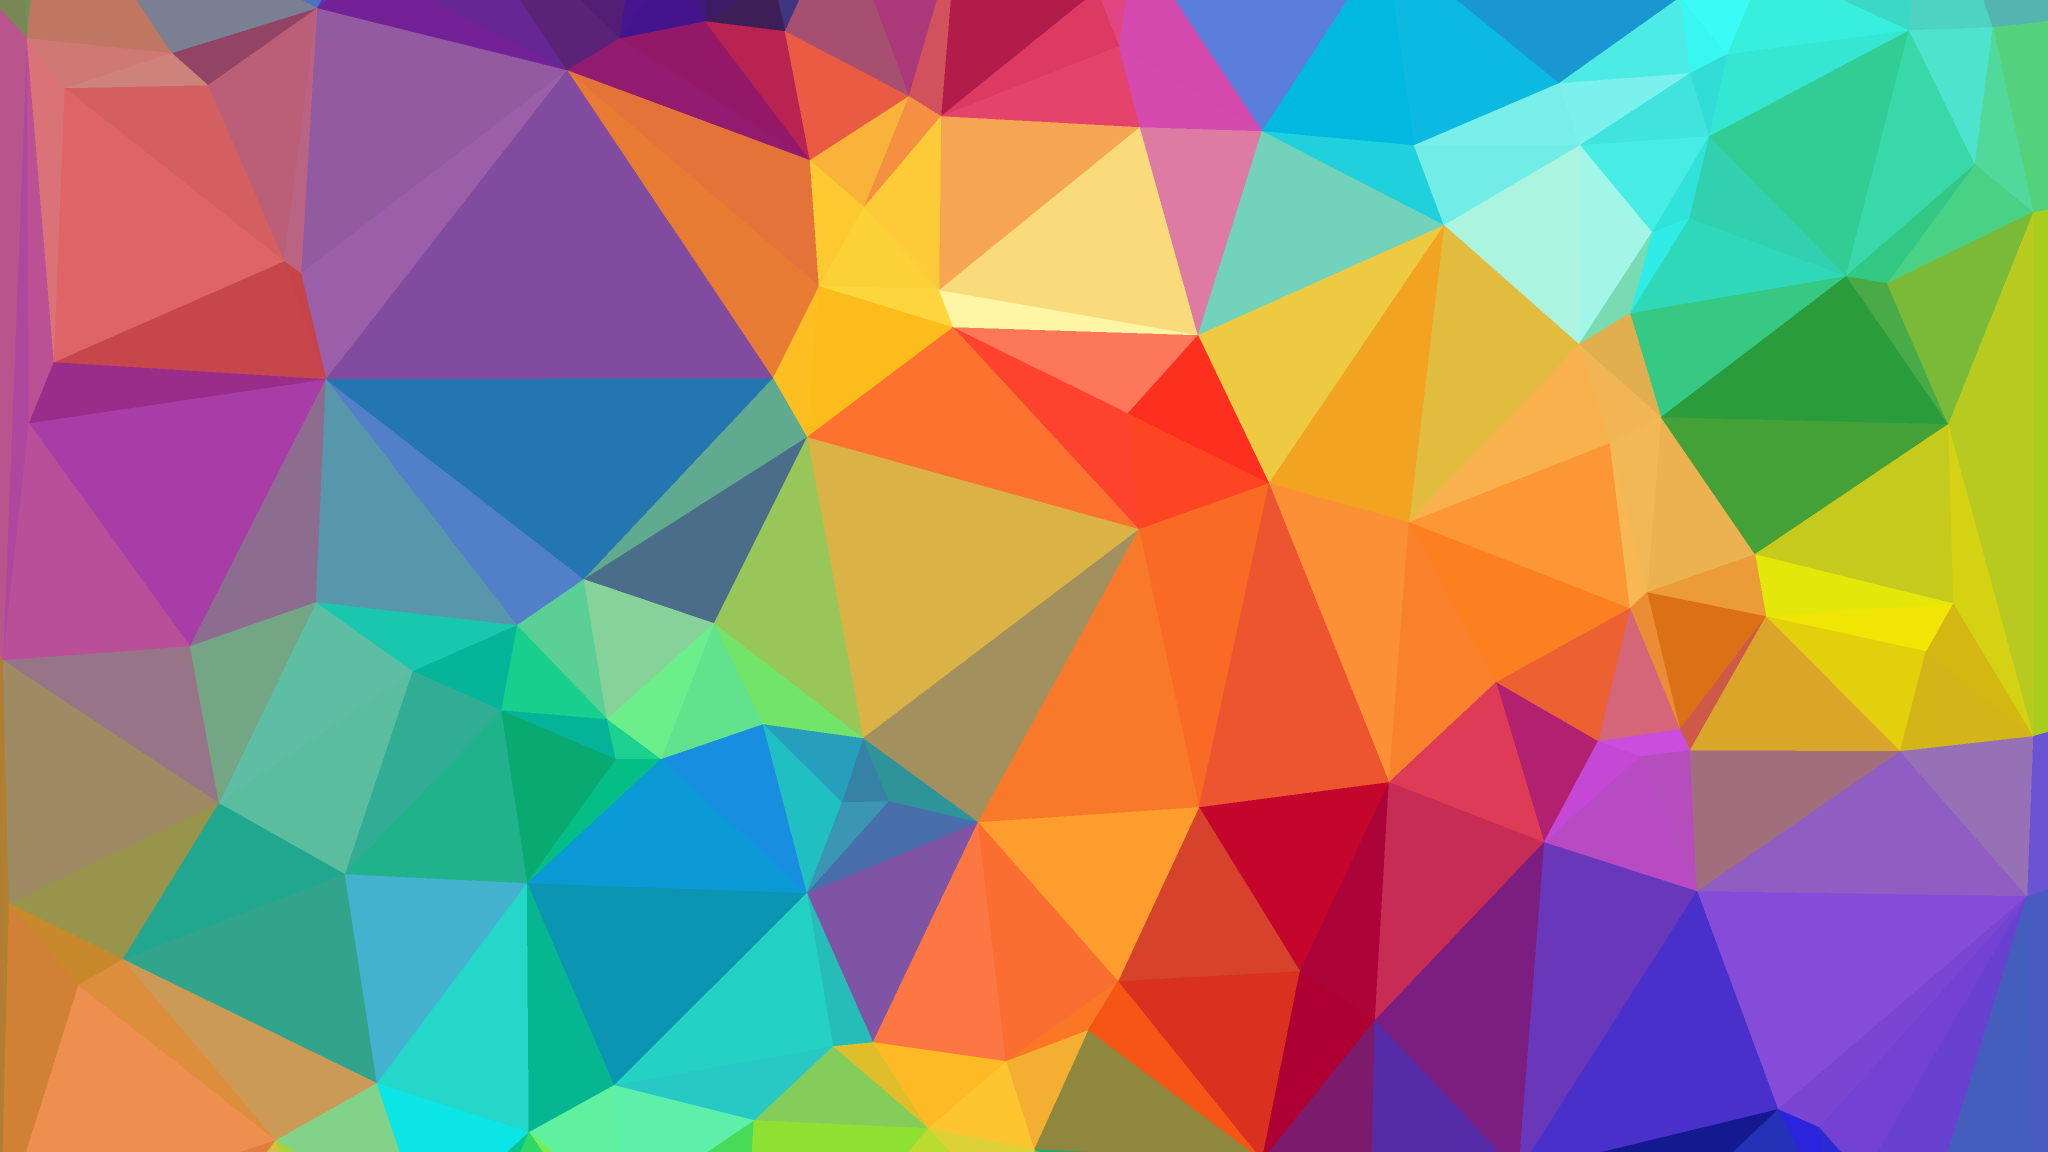 Wallpaper Geometric Color 20 2K UHD by AIRWORLDKING on